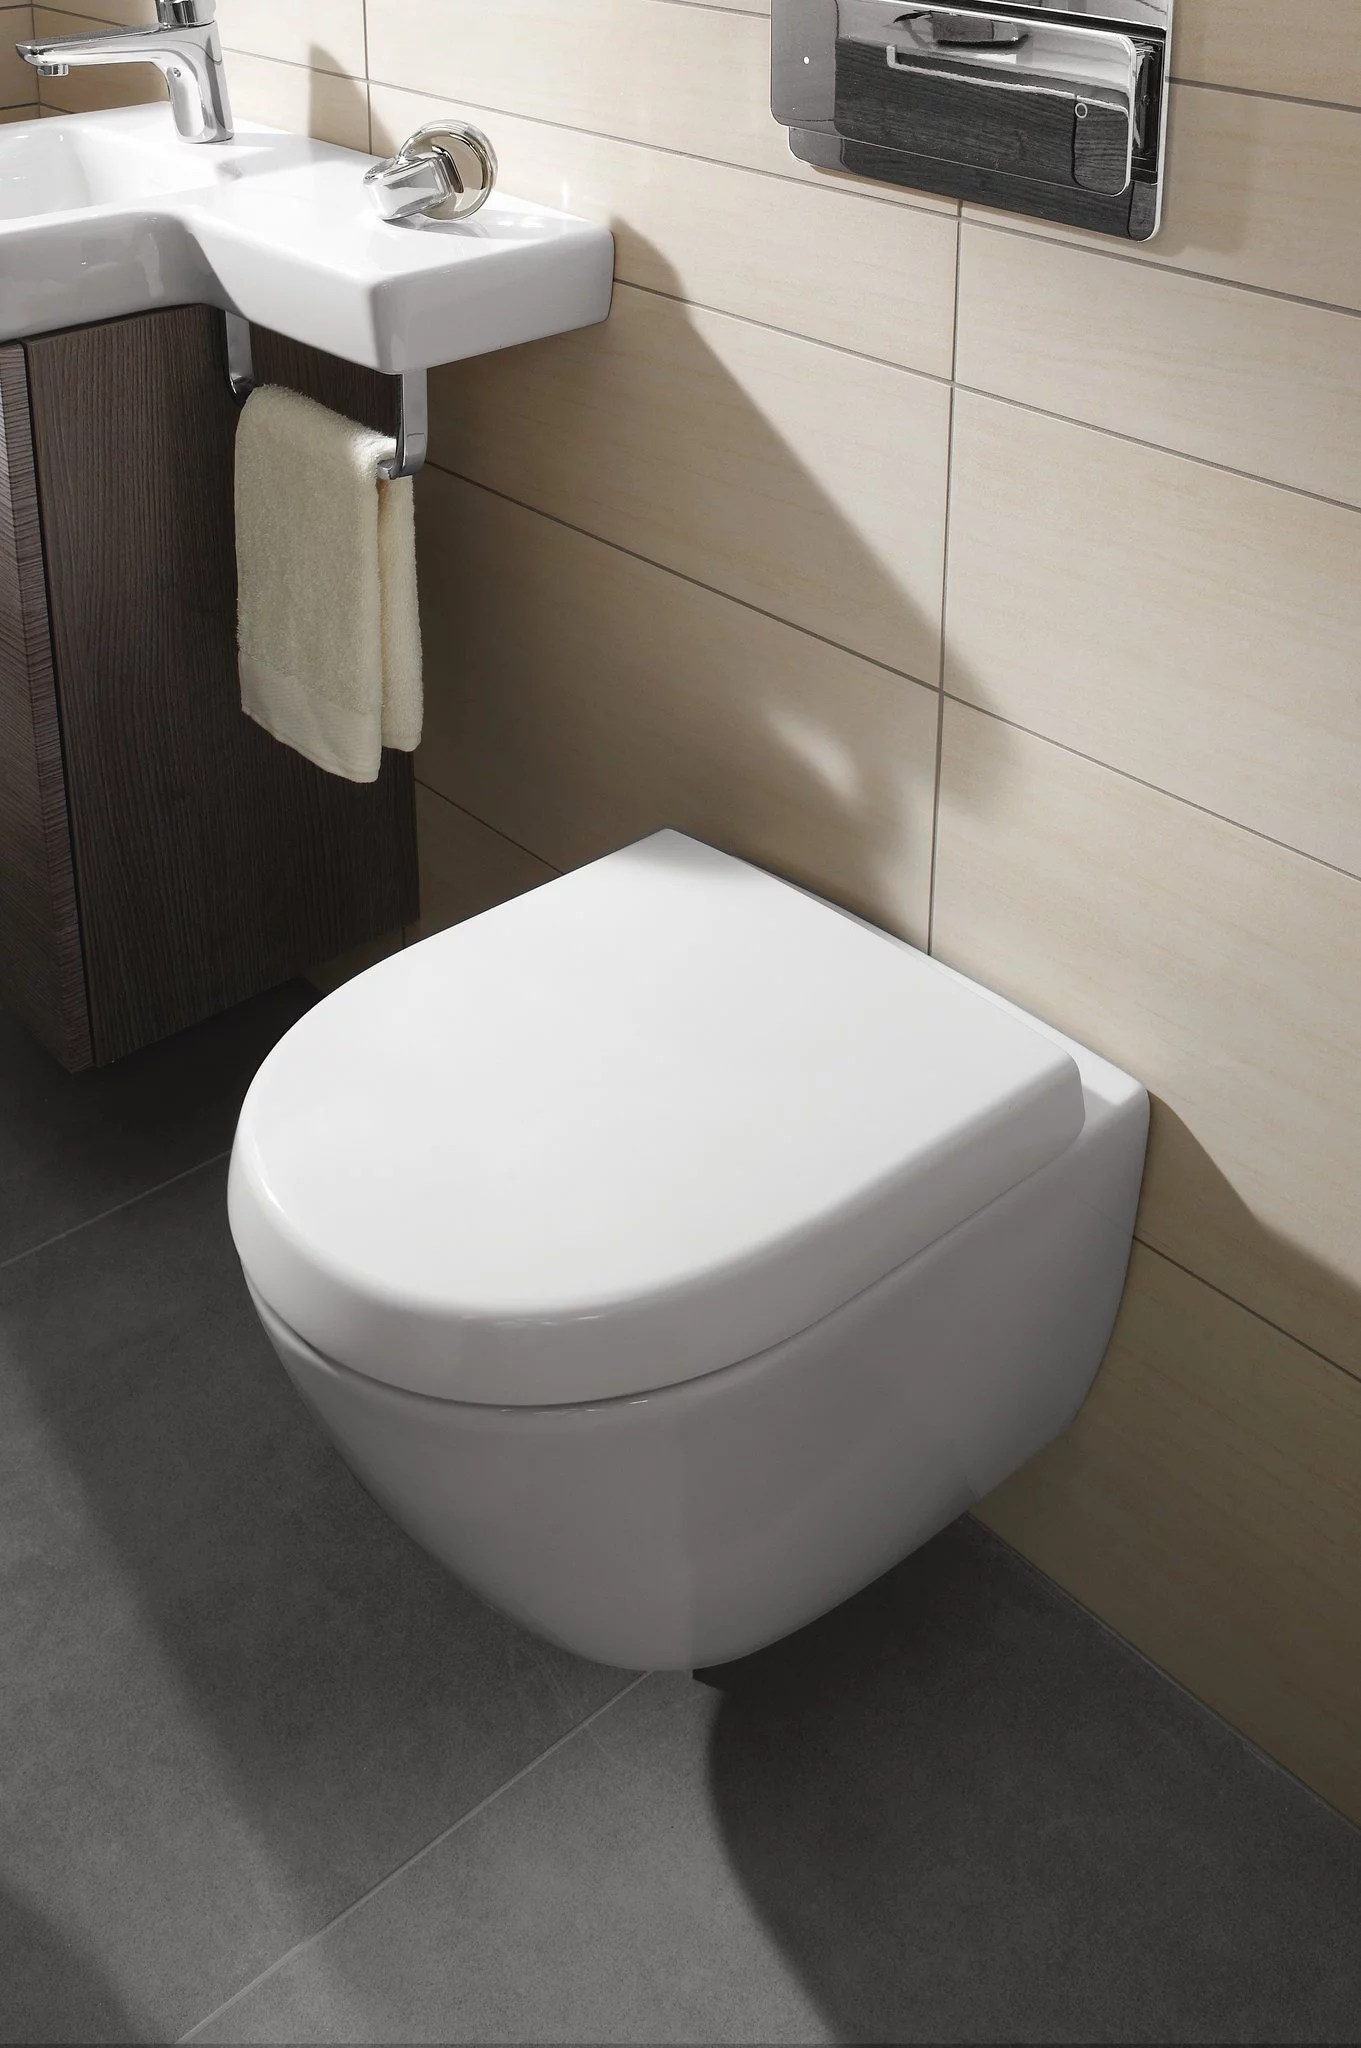 Badplaner Villeroy Subway 2 Wc Sitz Compact 9m69s1 Villeroy And Boch